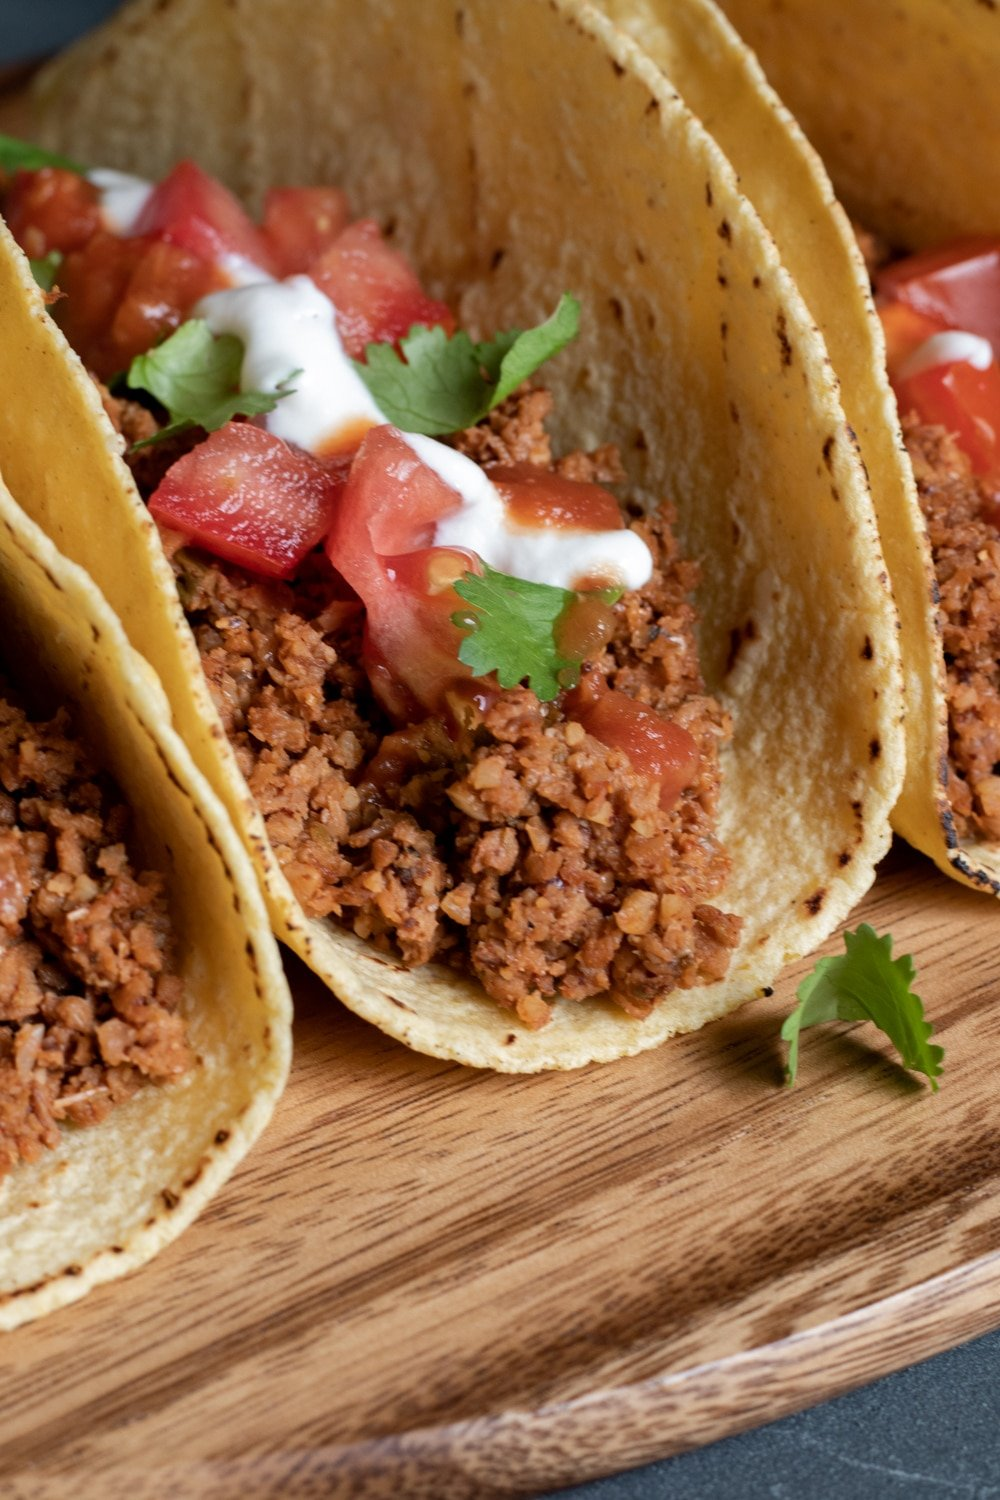 close up view of taco filled with crumbled soy curl meat